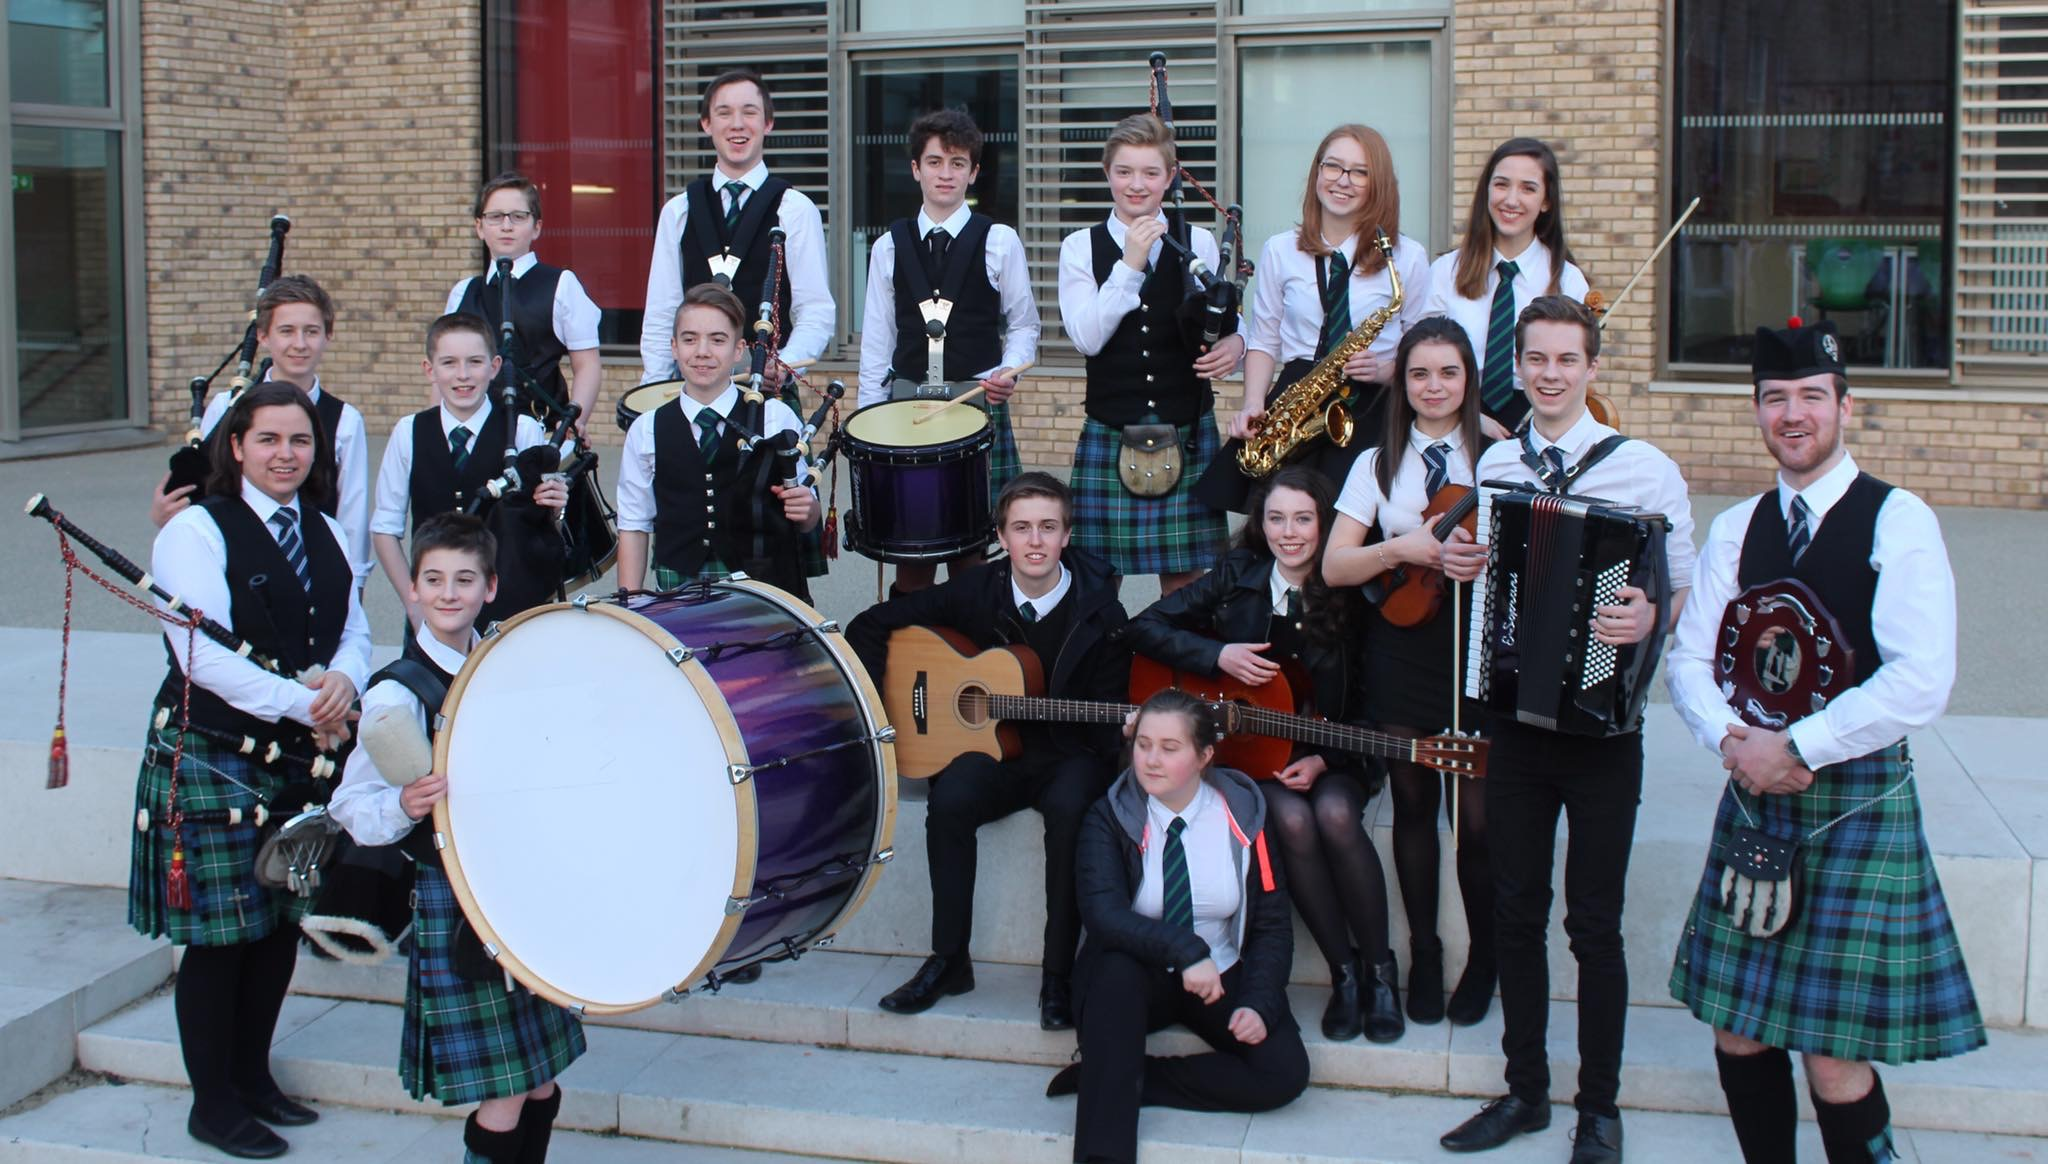 Gairloch High School won the Debut 'B' competition